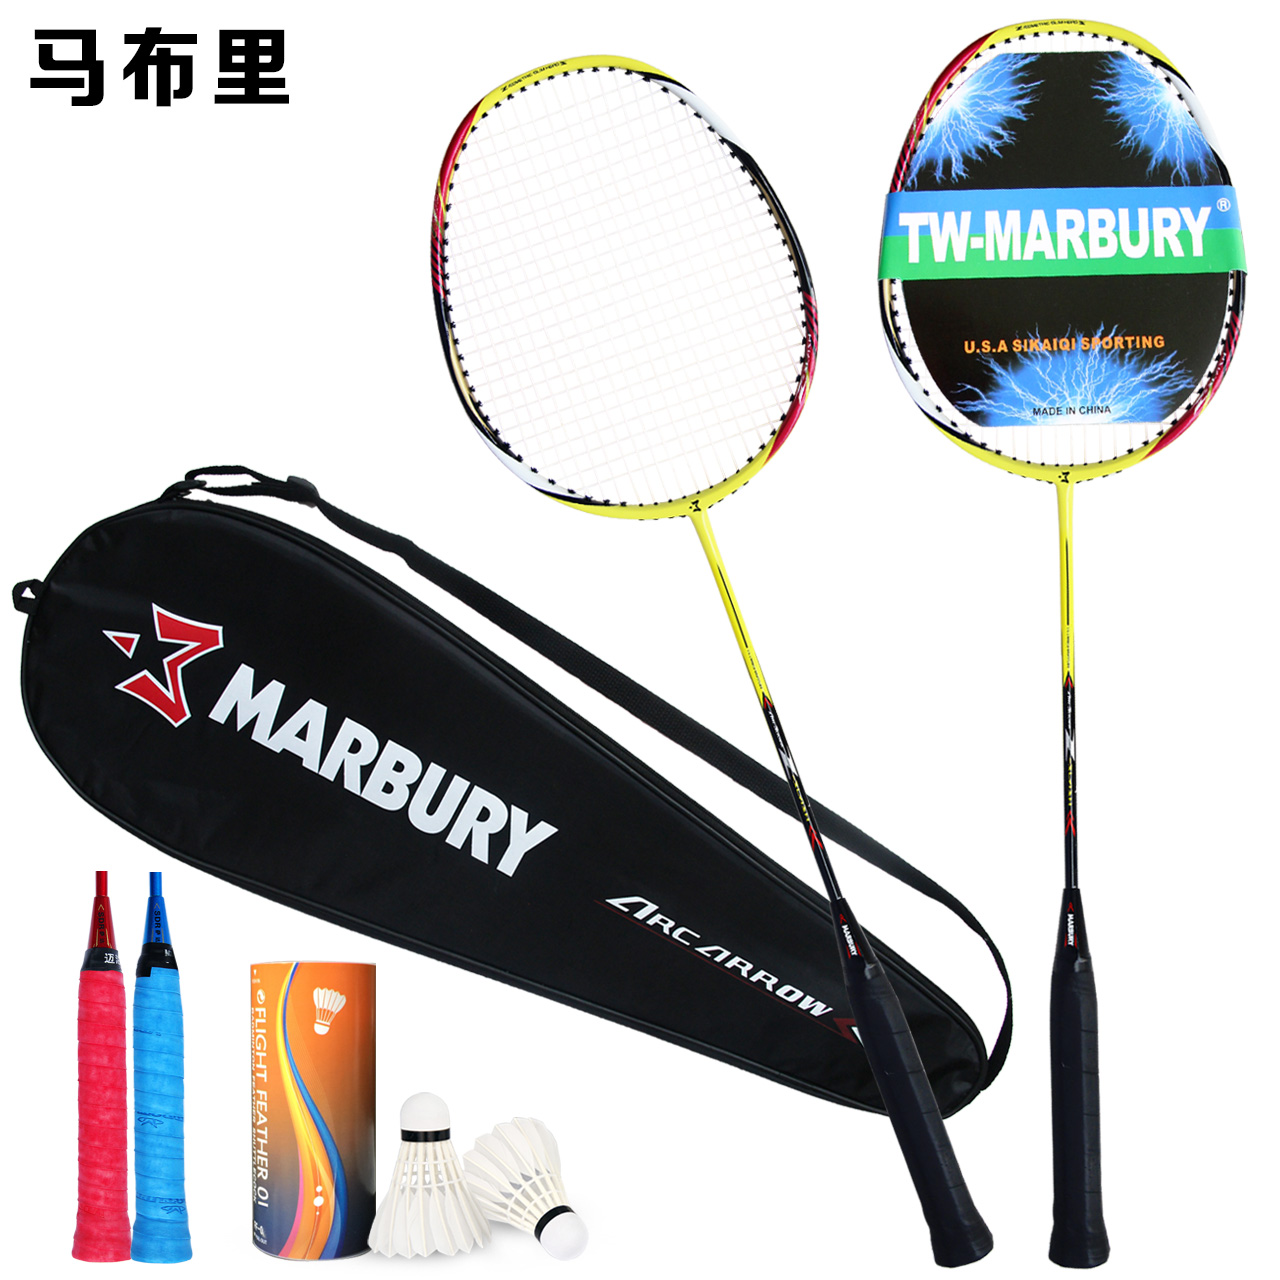 Genuine marbury badminton racket badminton racket carbon 2 loaded full shipping to send hand gel film sets double shot ultralight training ball